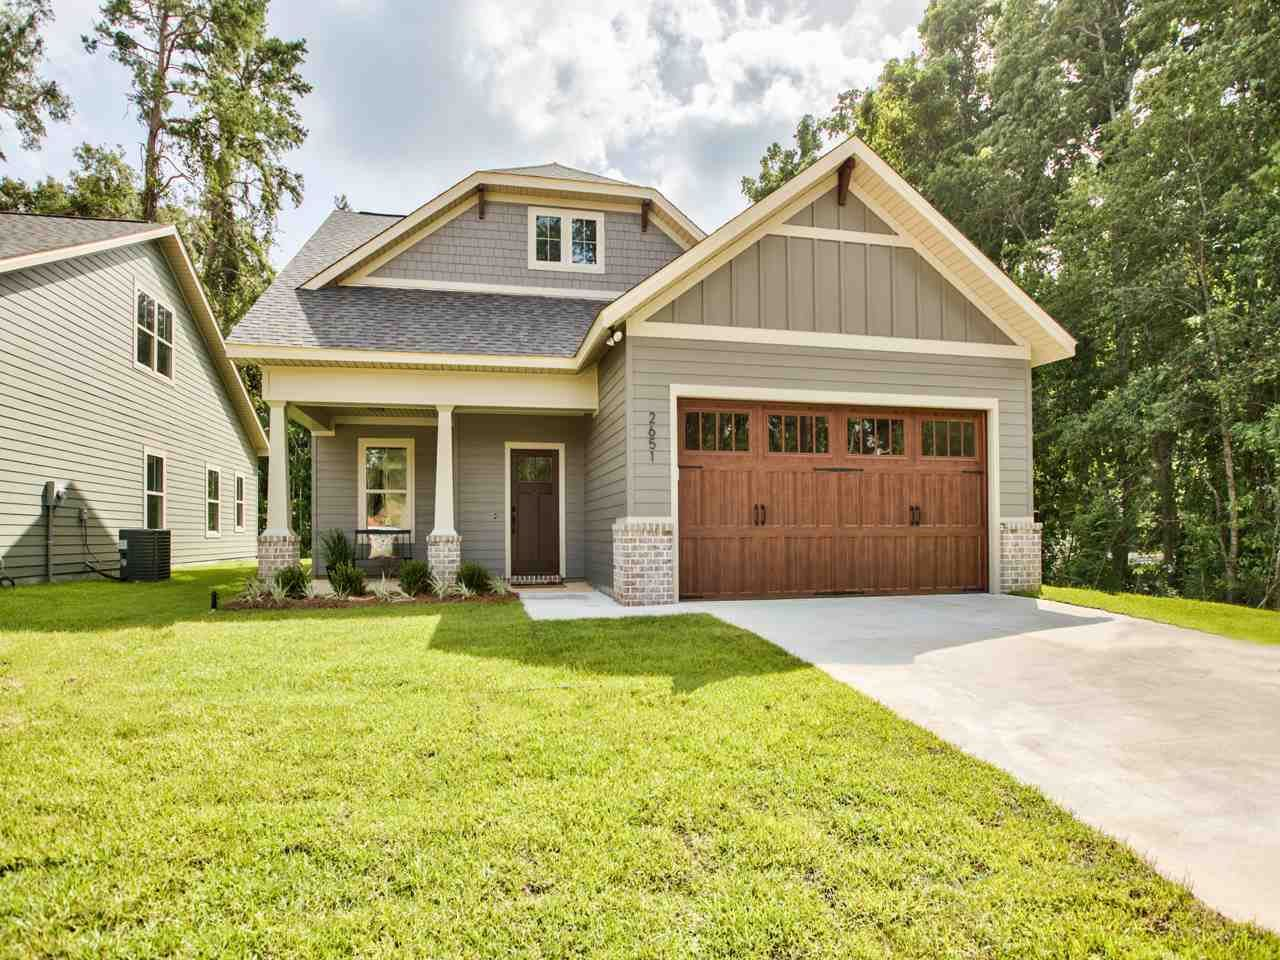 2670 Bending Way, Tallahassee, FL 32308 - MLS#: 331323